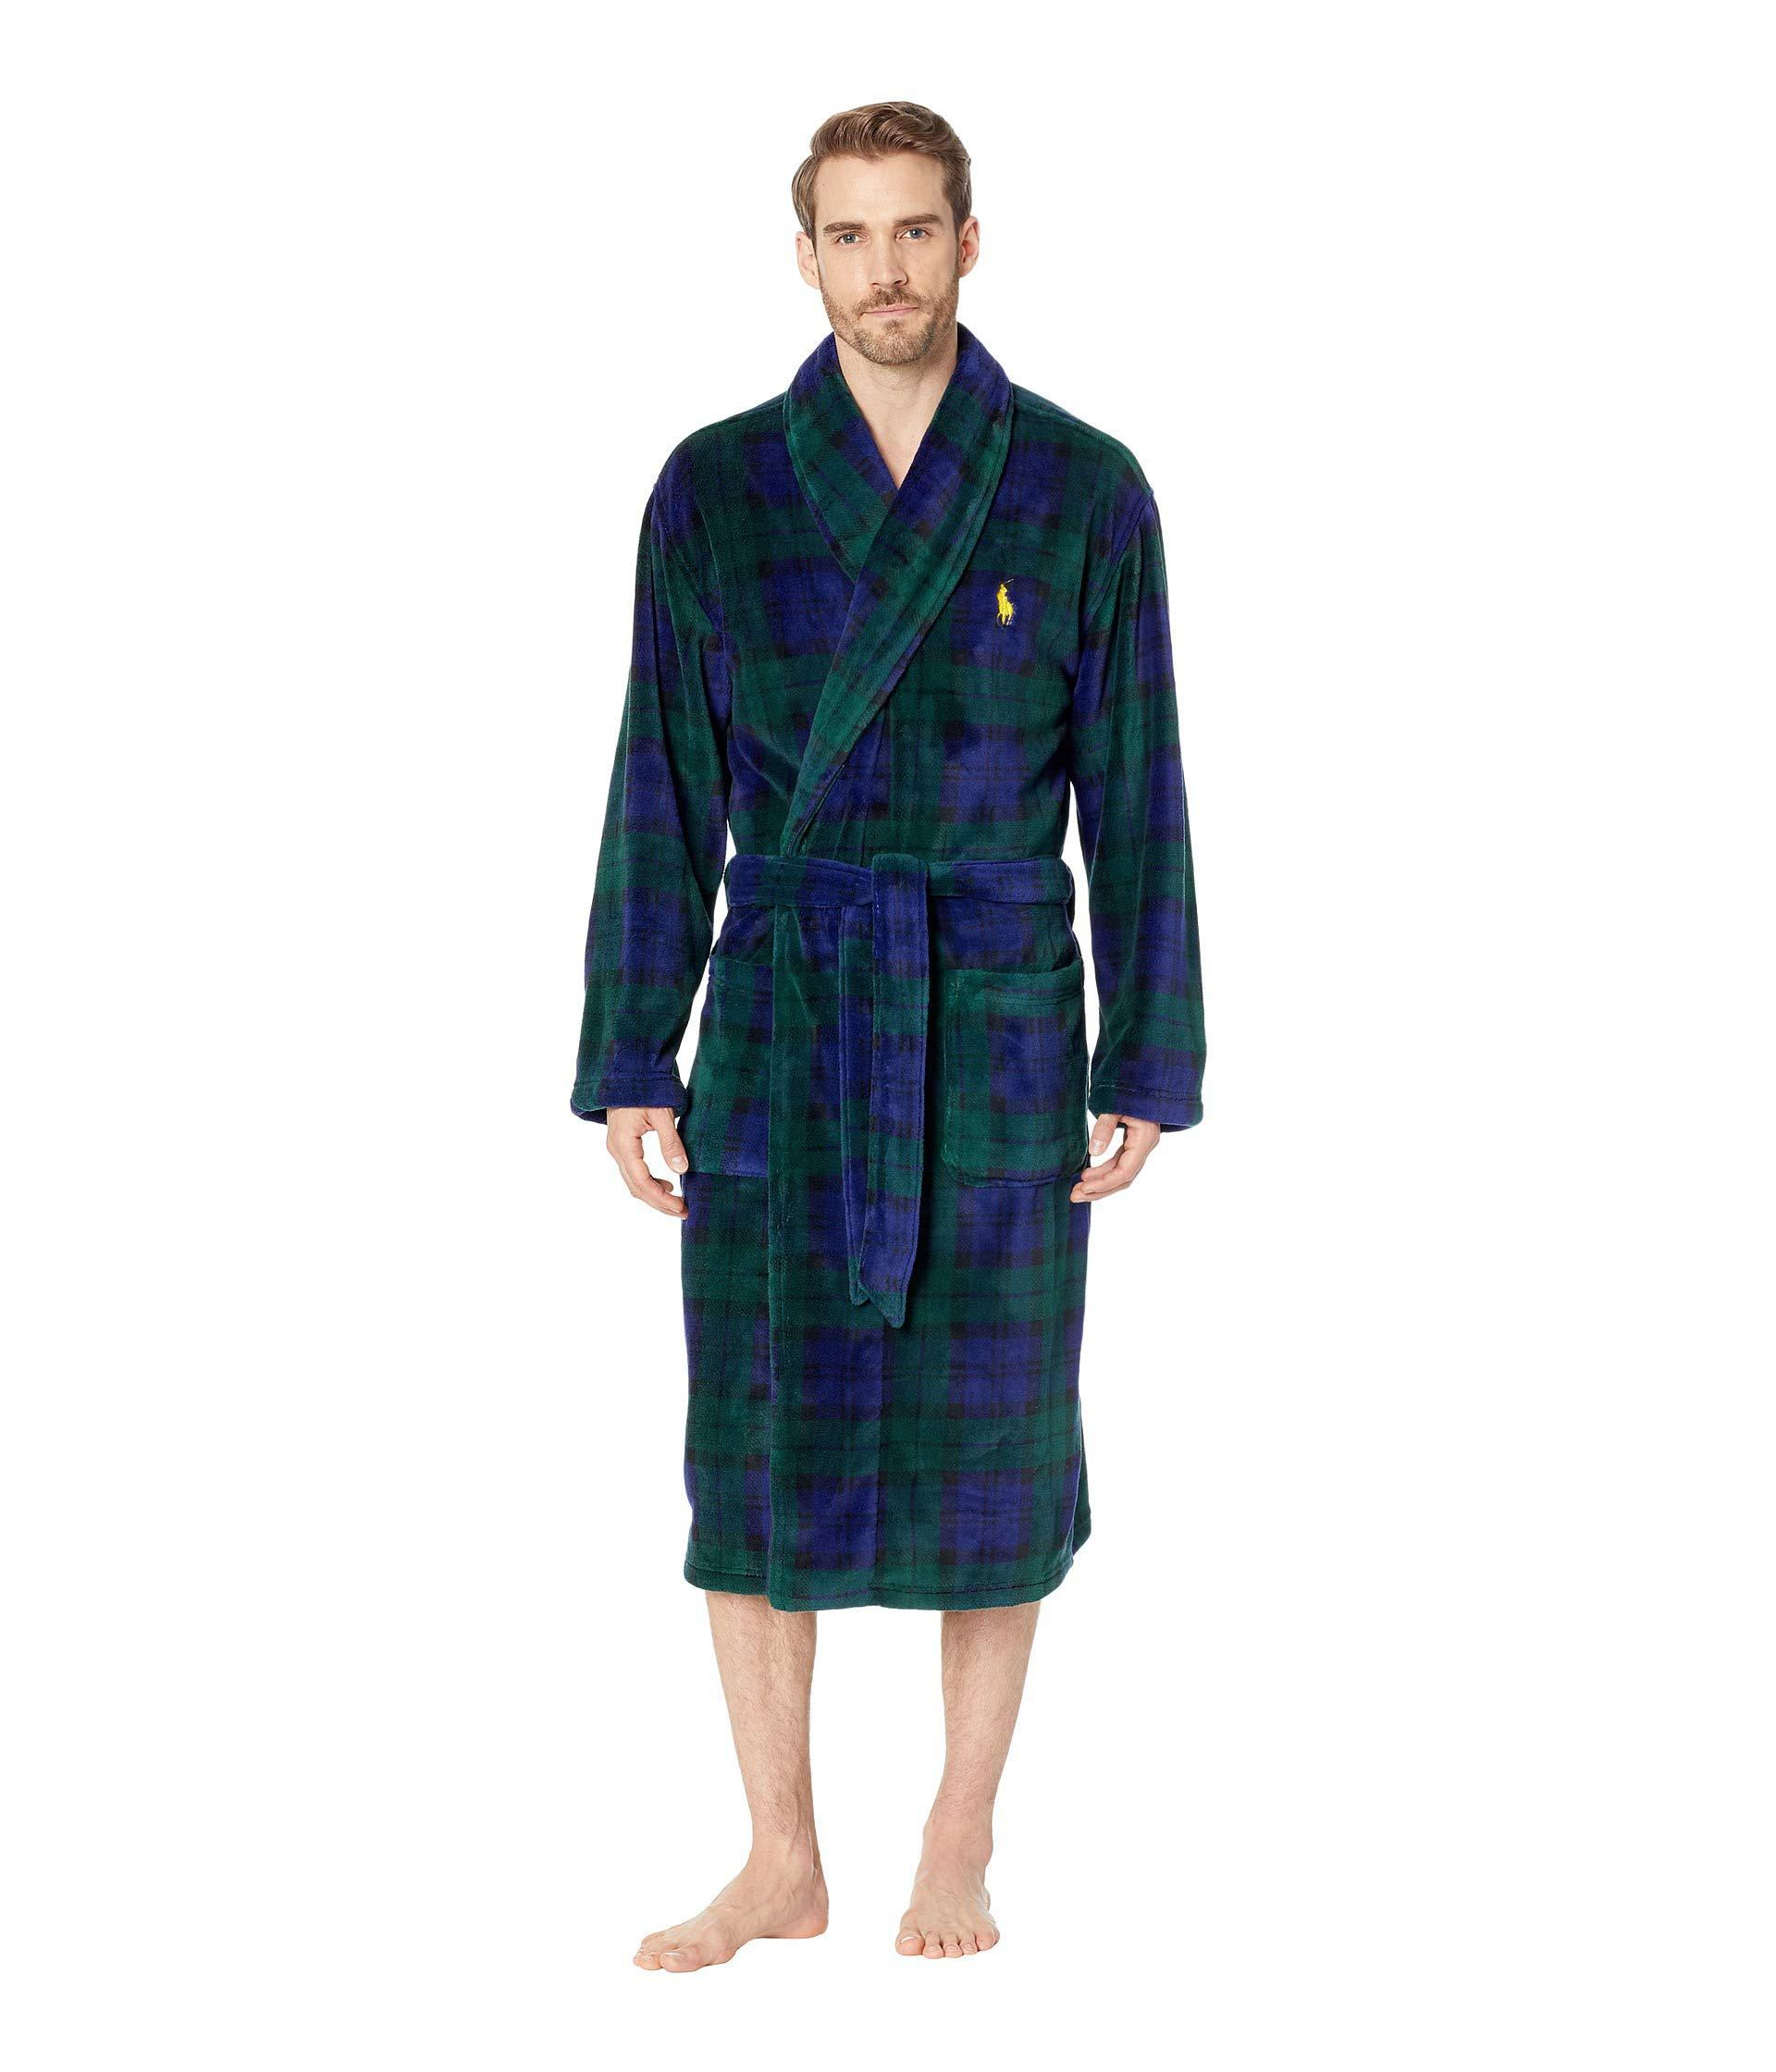 094de61c24d france lyst polo ralph lauren mens brushed jersey robe in blue for ...